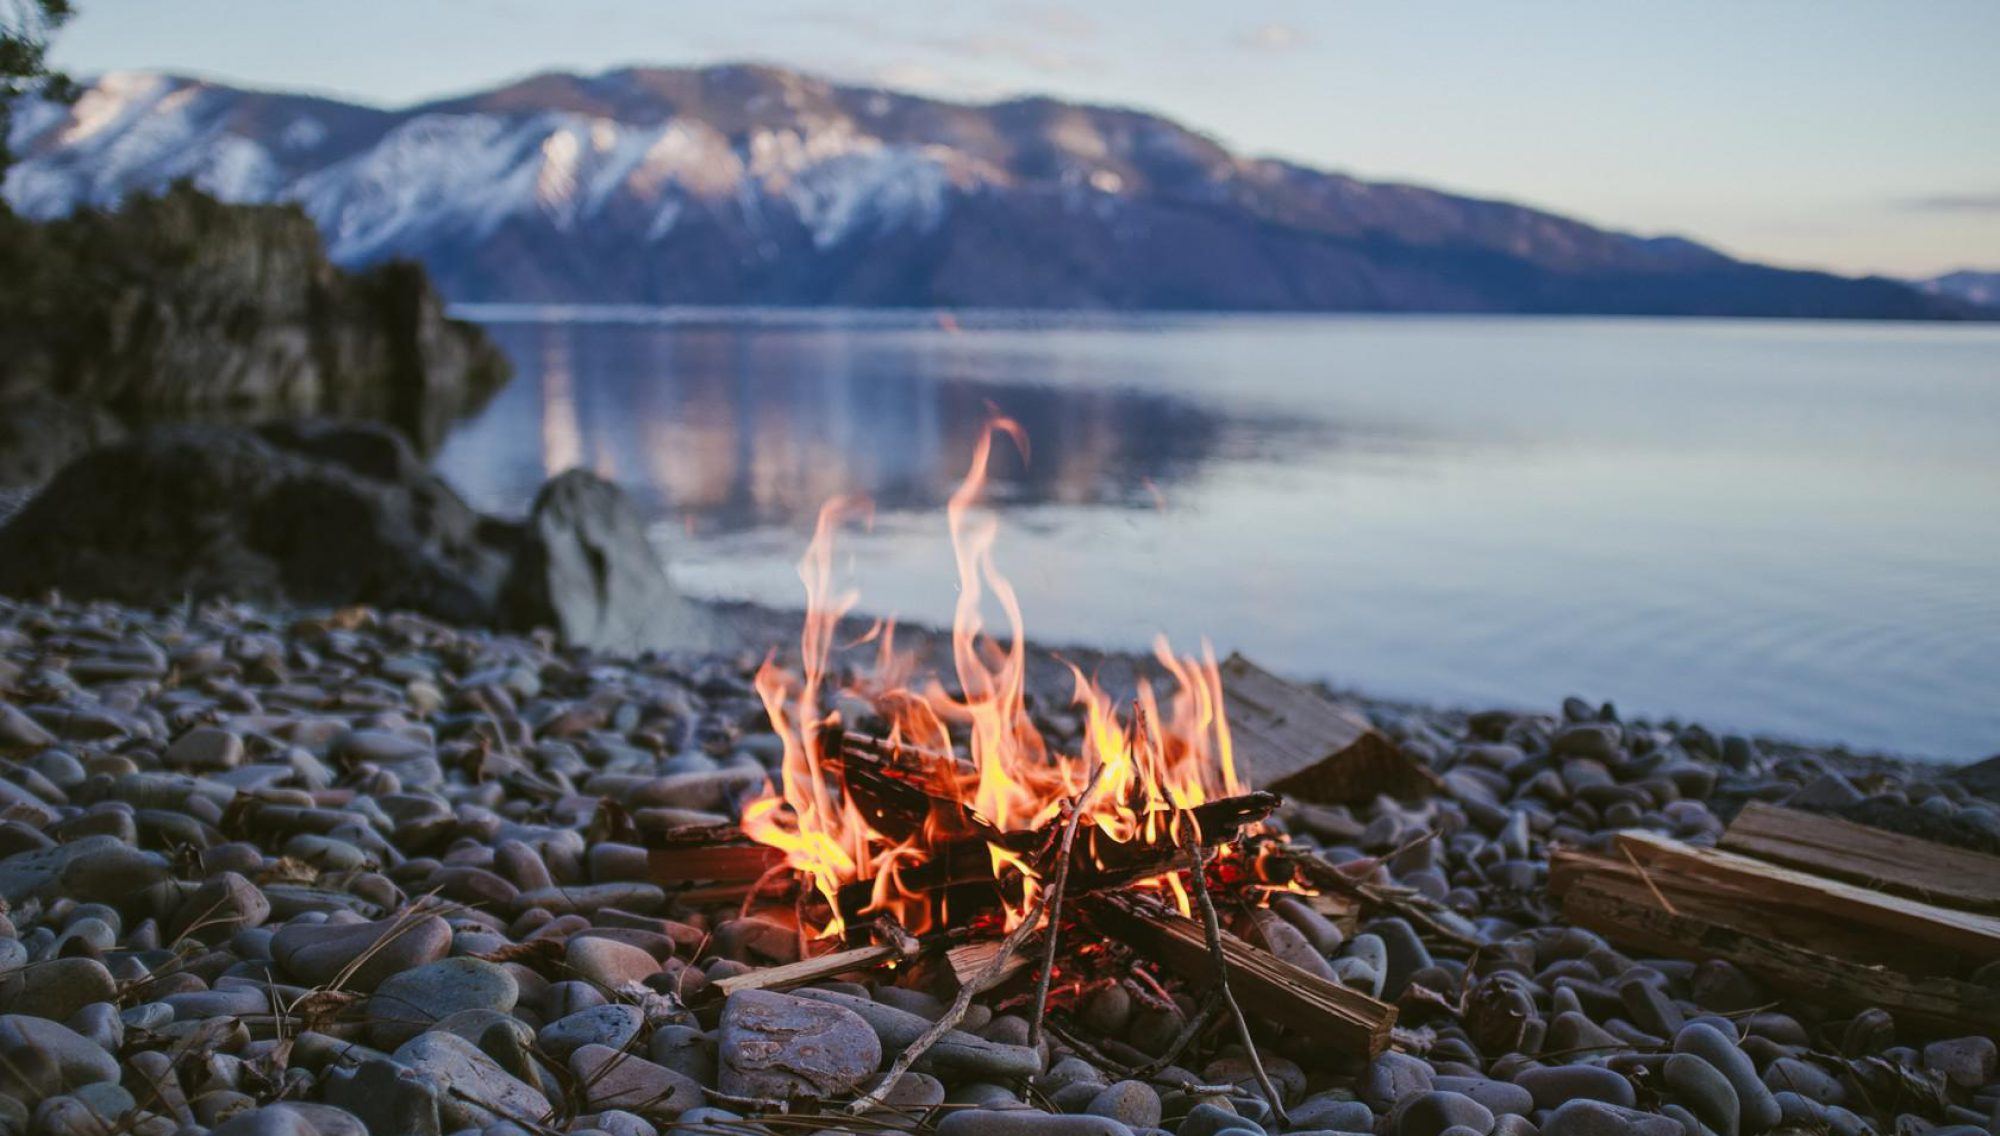 The Fire of Creativity